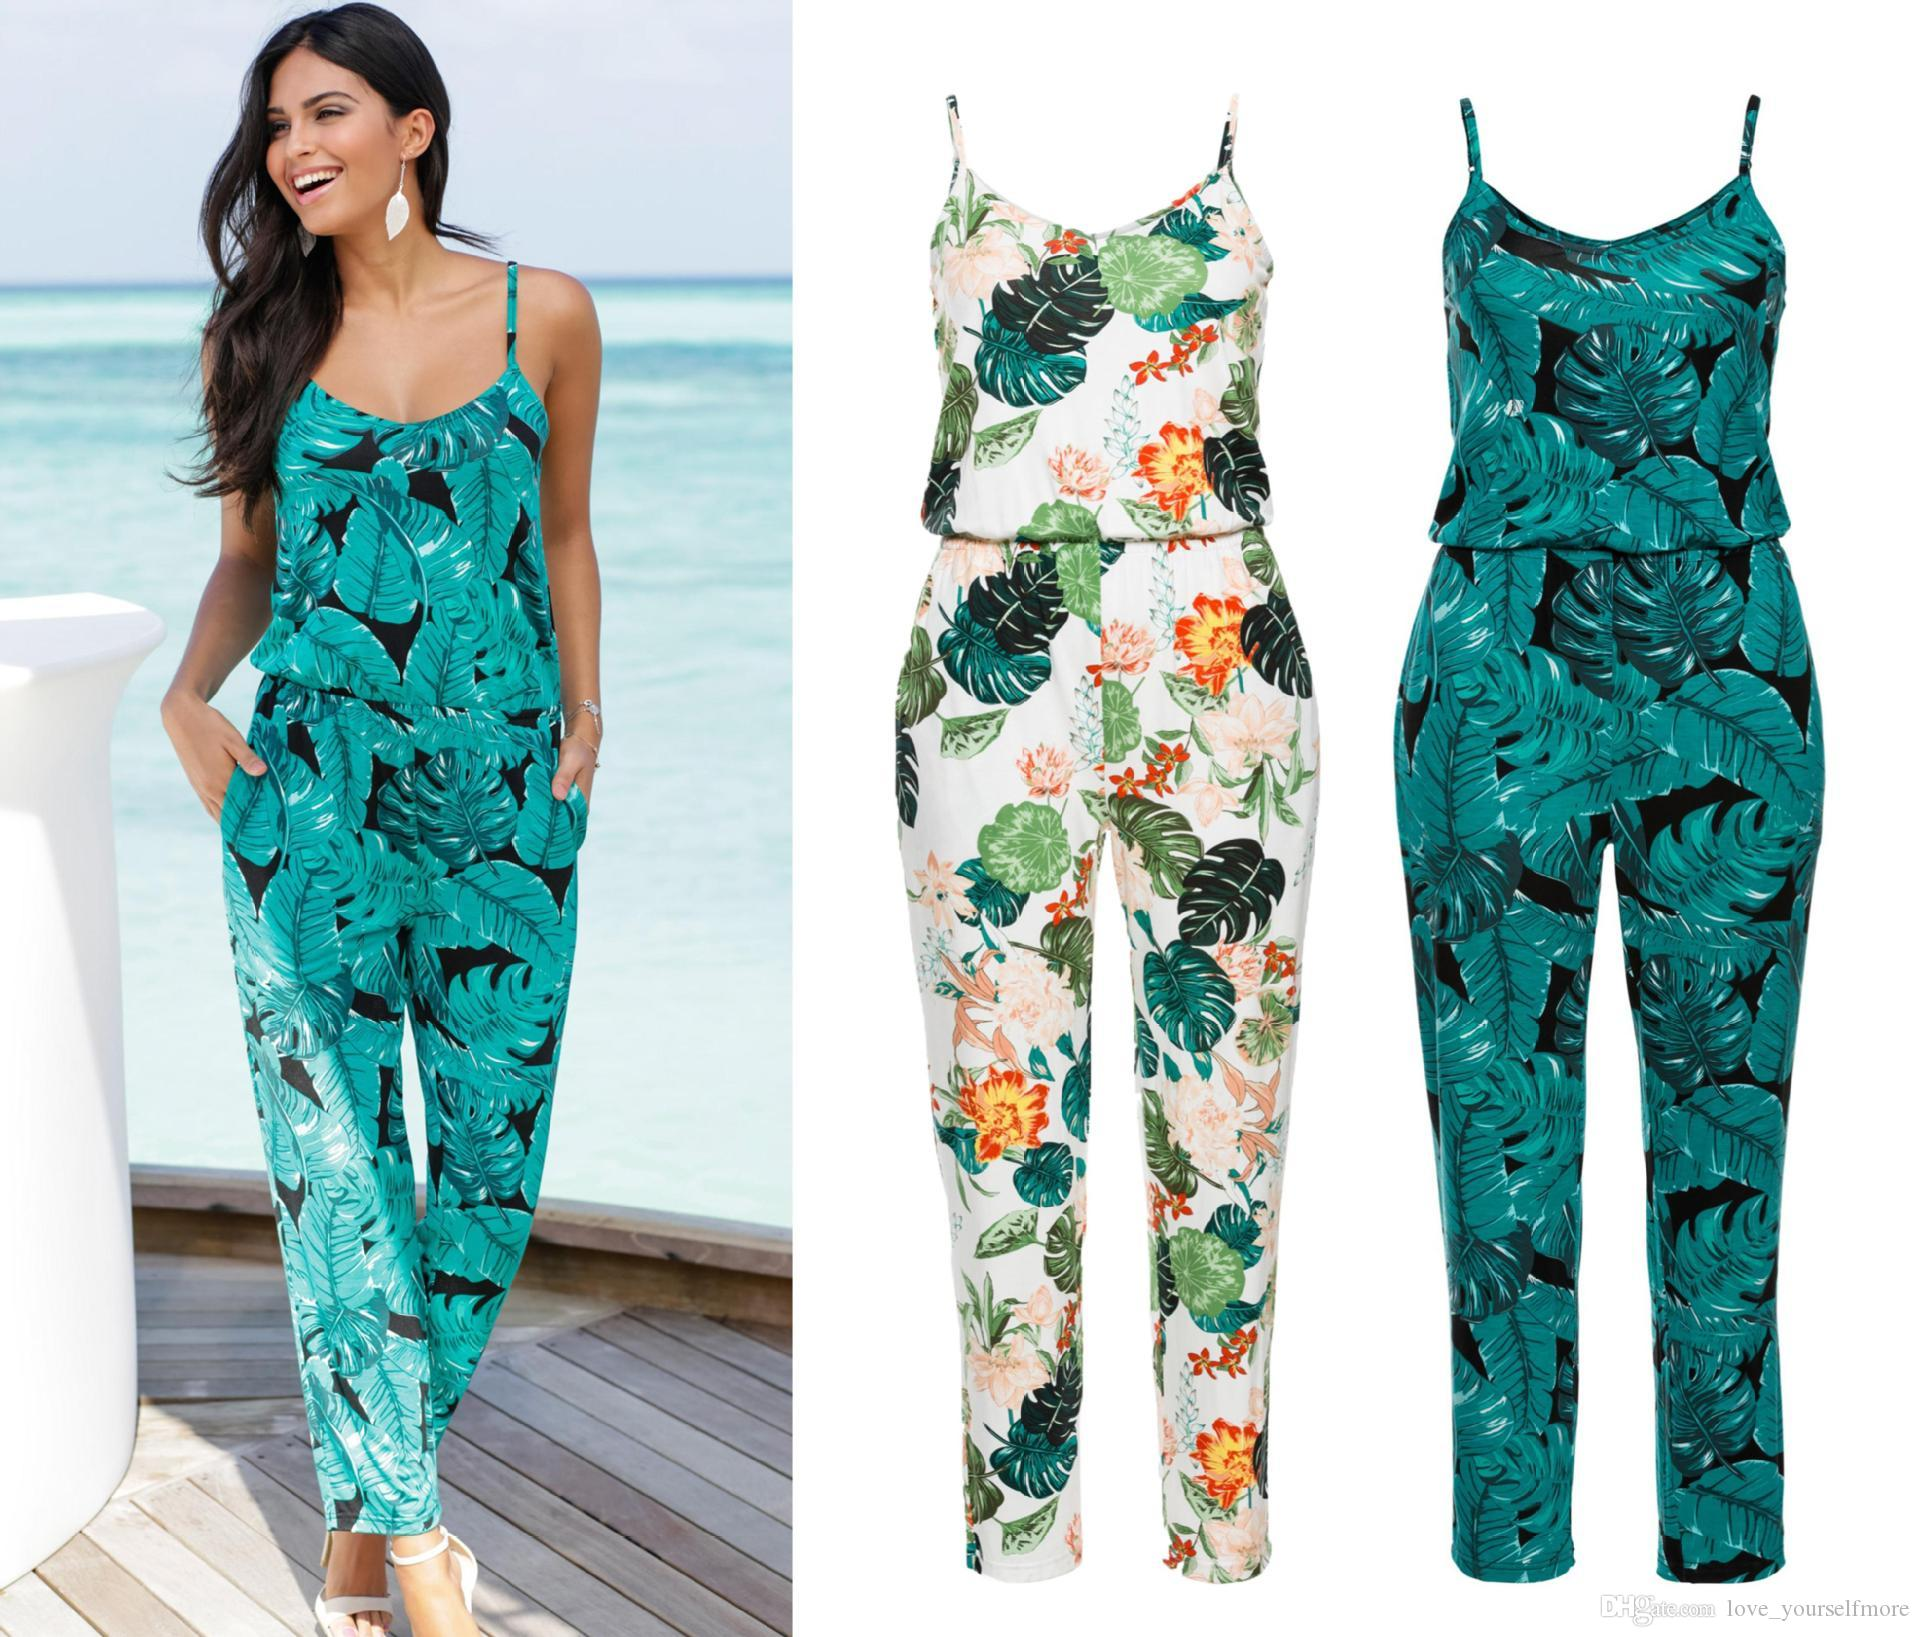 cf622073a4c5 New Arrival Women Floral Print Romper Jumpsuit Sleeveless Beach ...